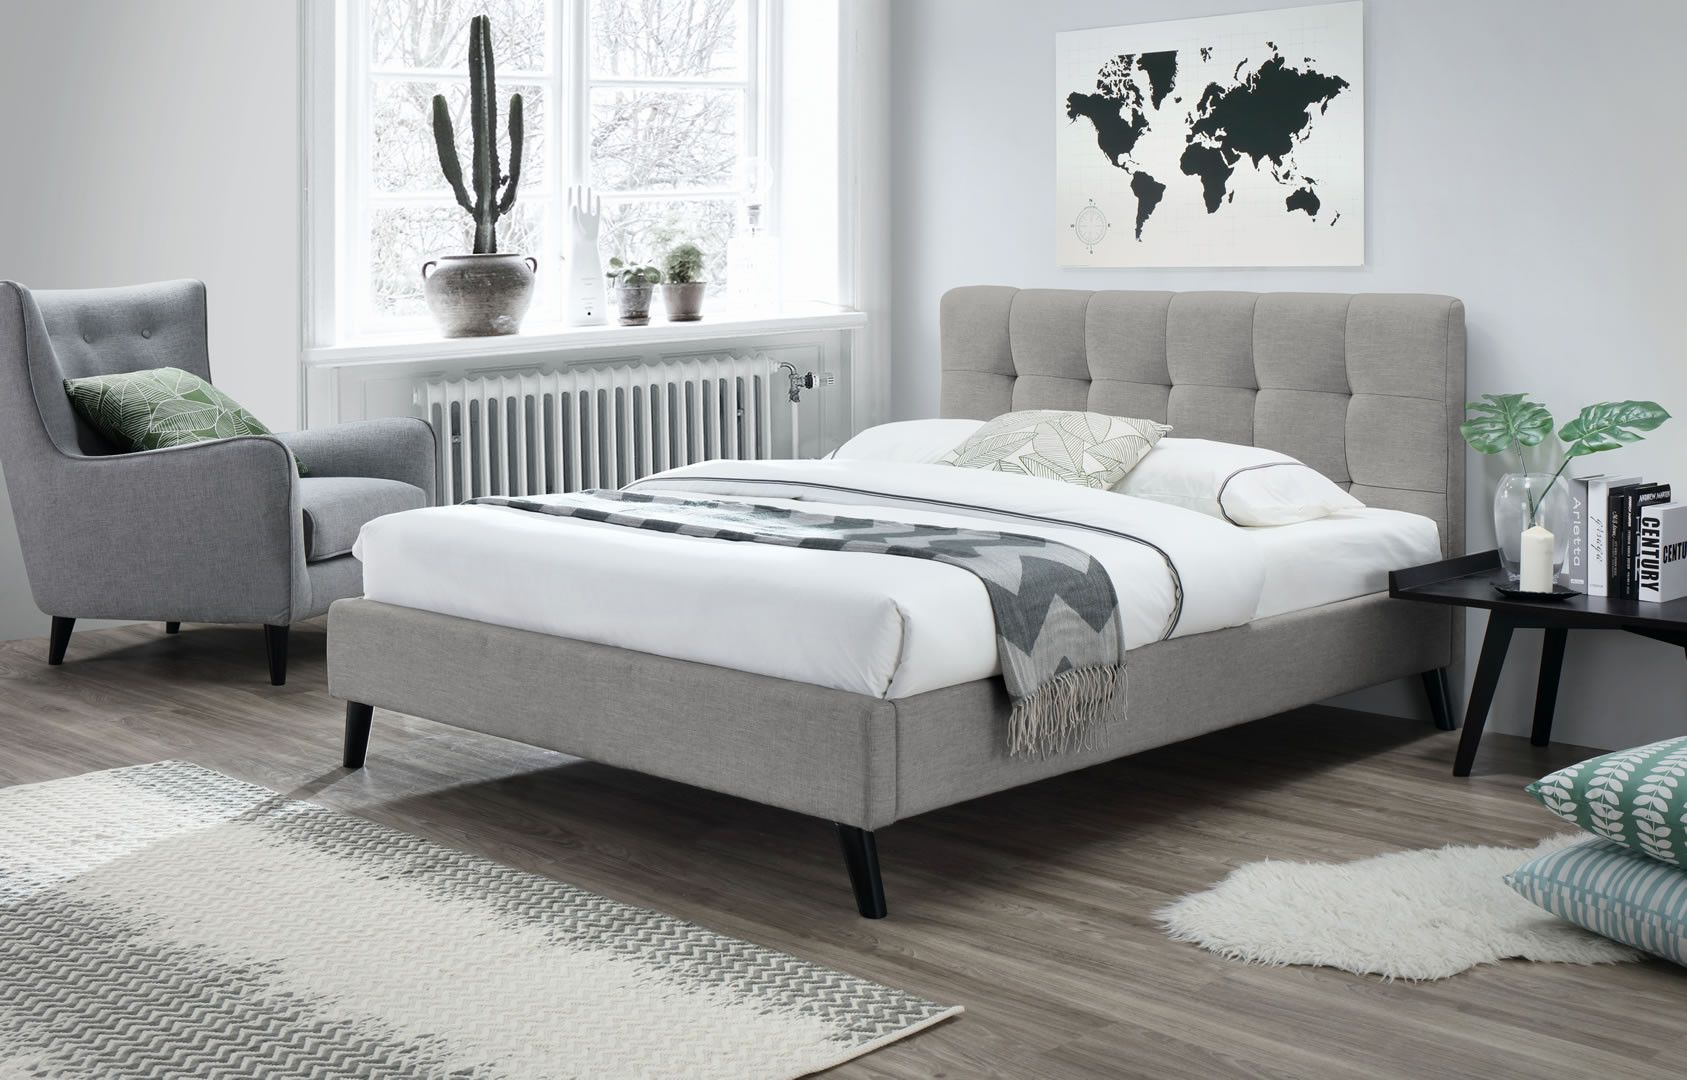 lits doubles lit double 160 x 200 cm avec t te de lit et sommier tulipe beige trocity. Black Bedroom Furniture Sets. Home Design Ideas